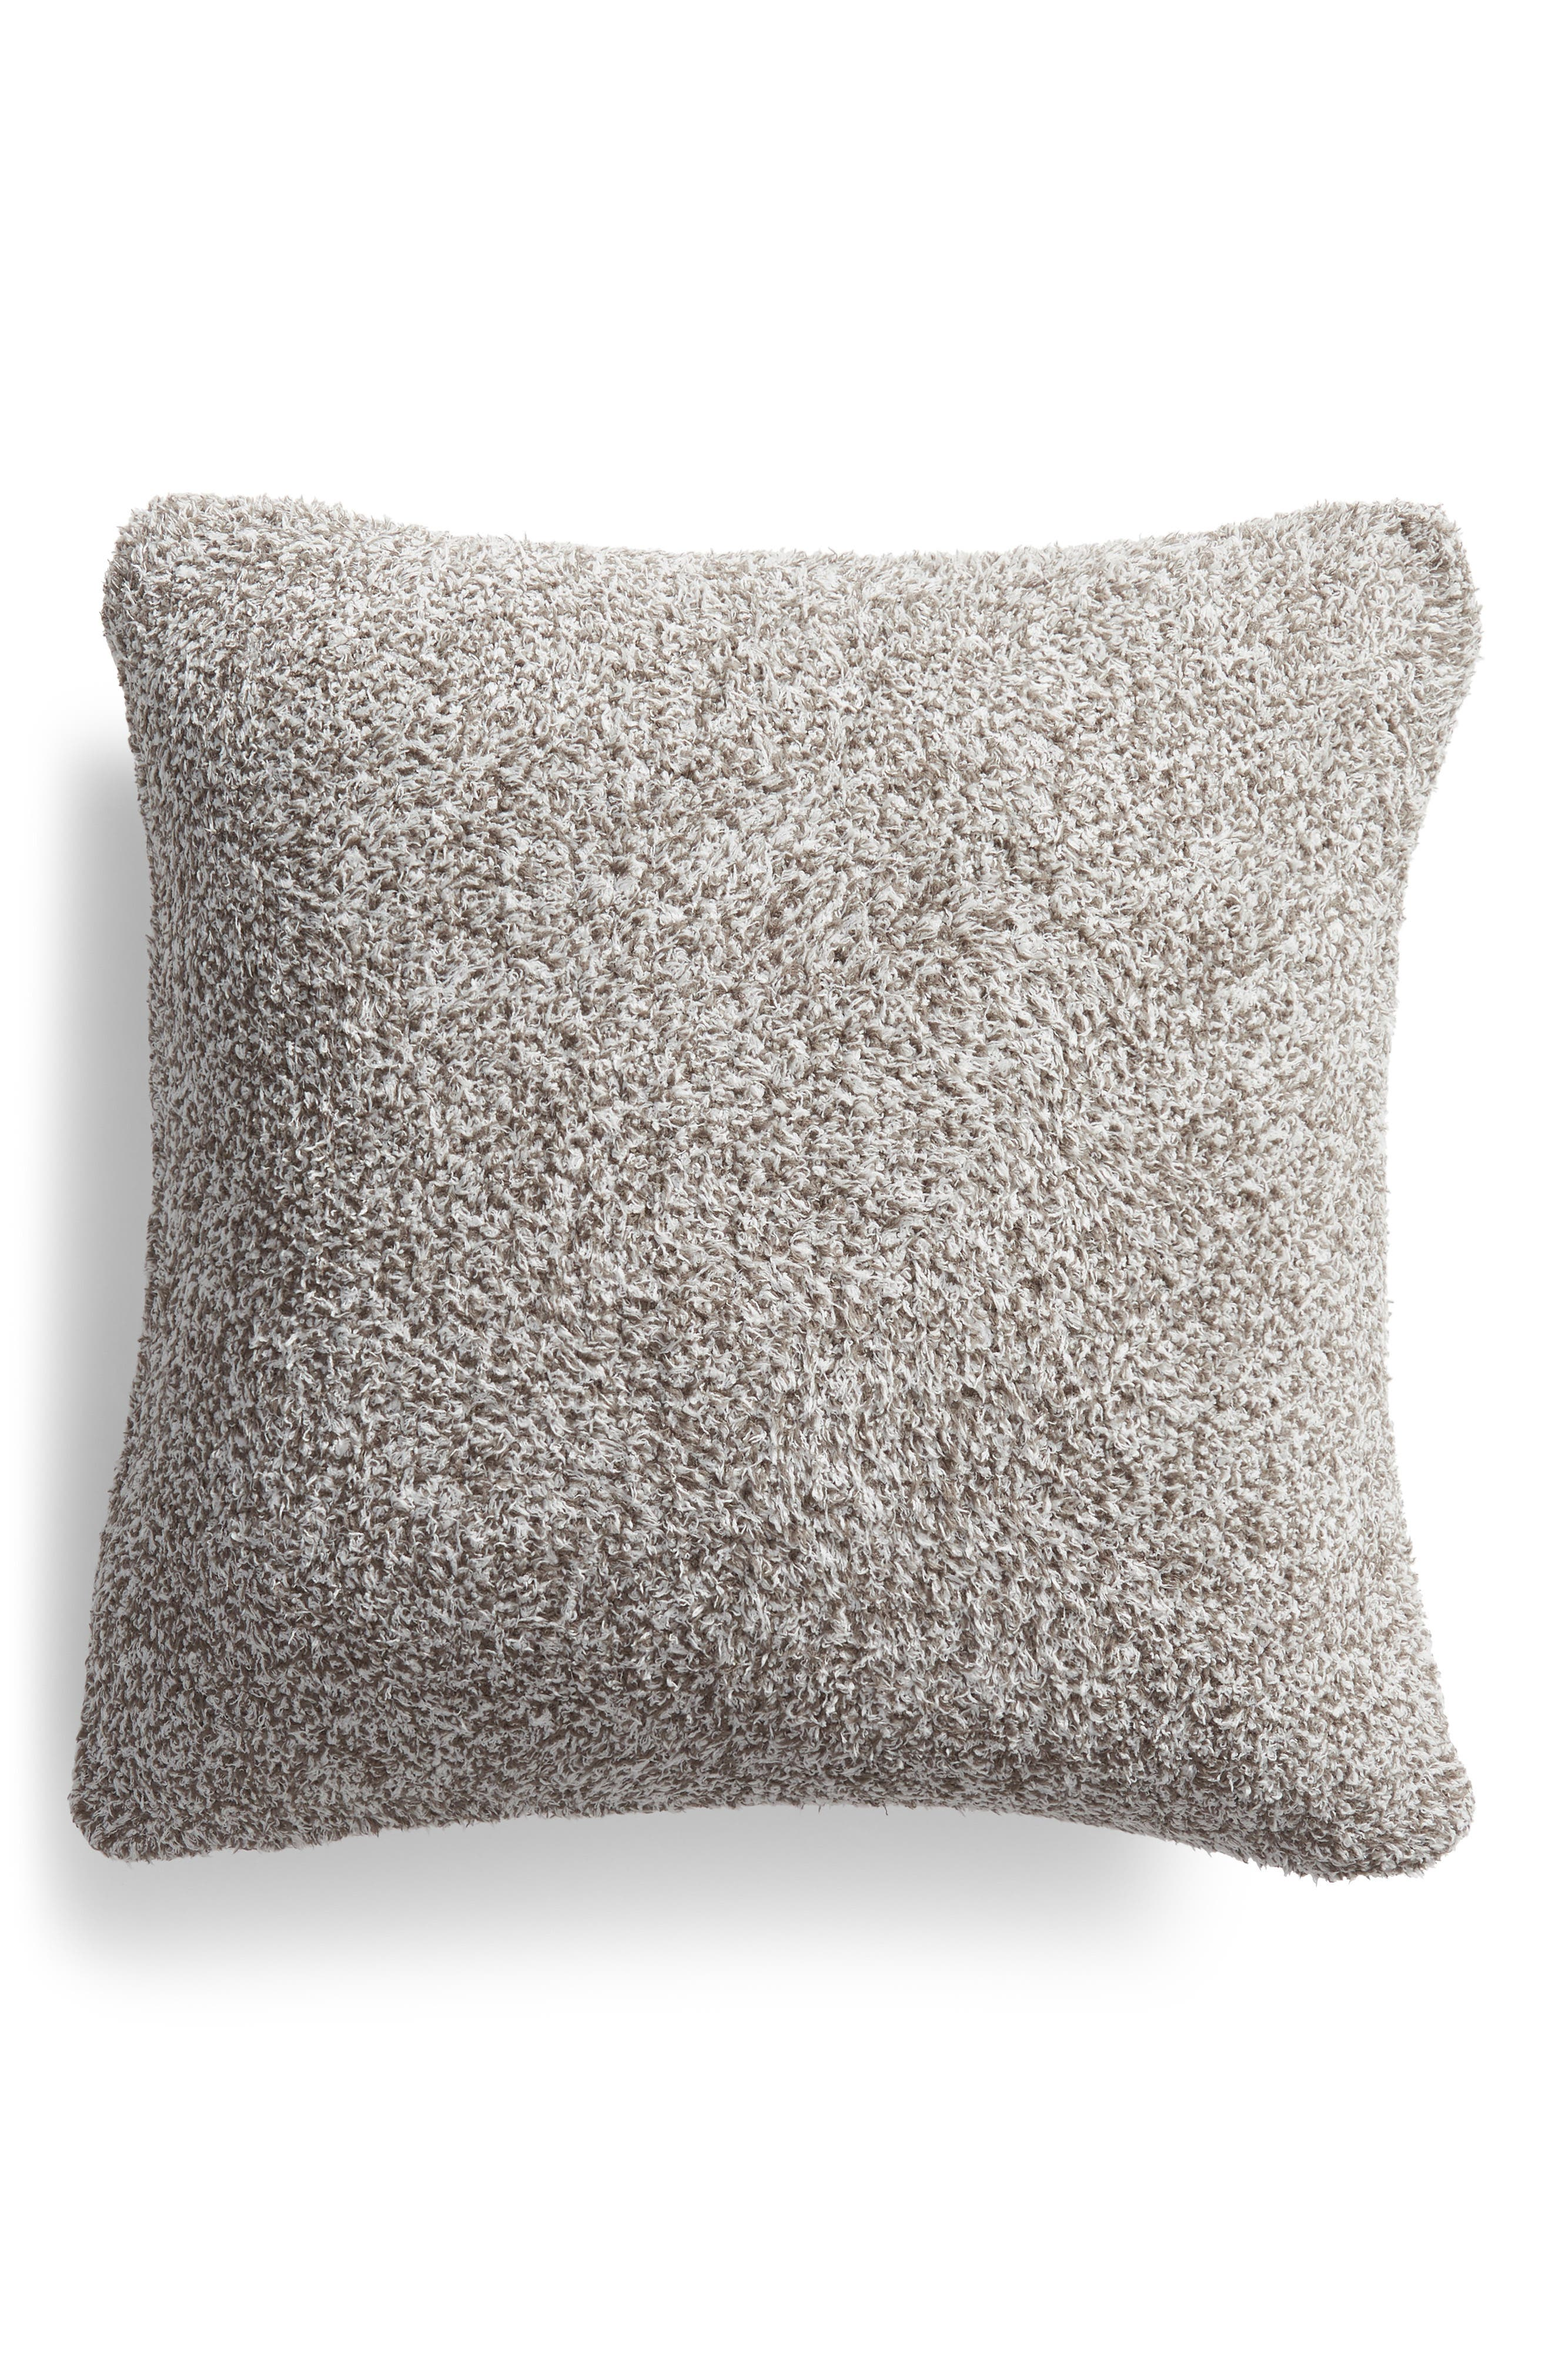 Cozychic<sup>®</sup> Heathered Accent Pillow,                             Main thumbnail 1, color,                             Charcoal/ White